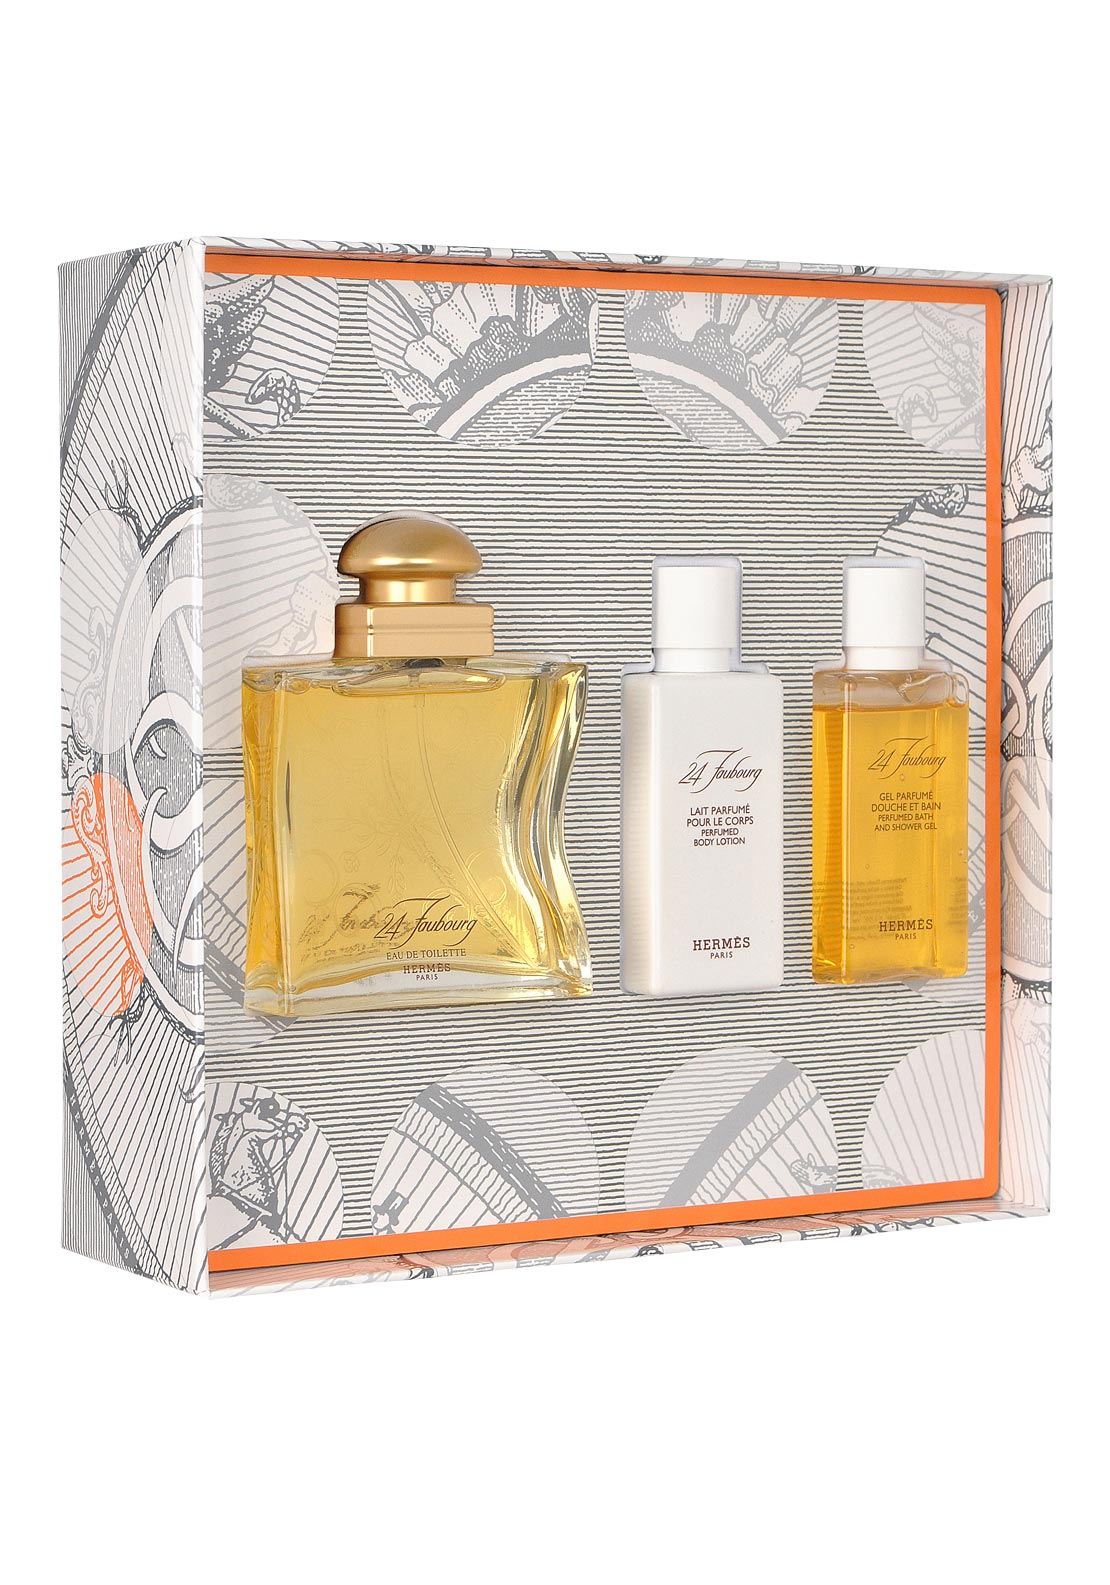 Hermes 24 Faubourg Eau De Toilette Gift Set for Women, 50ml